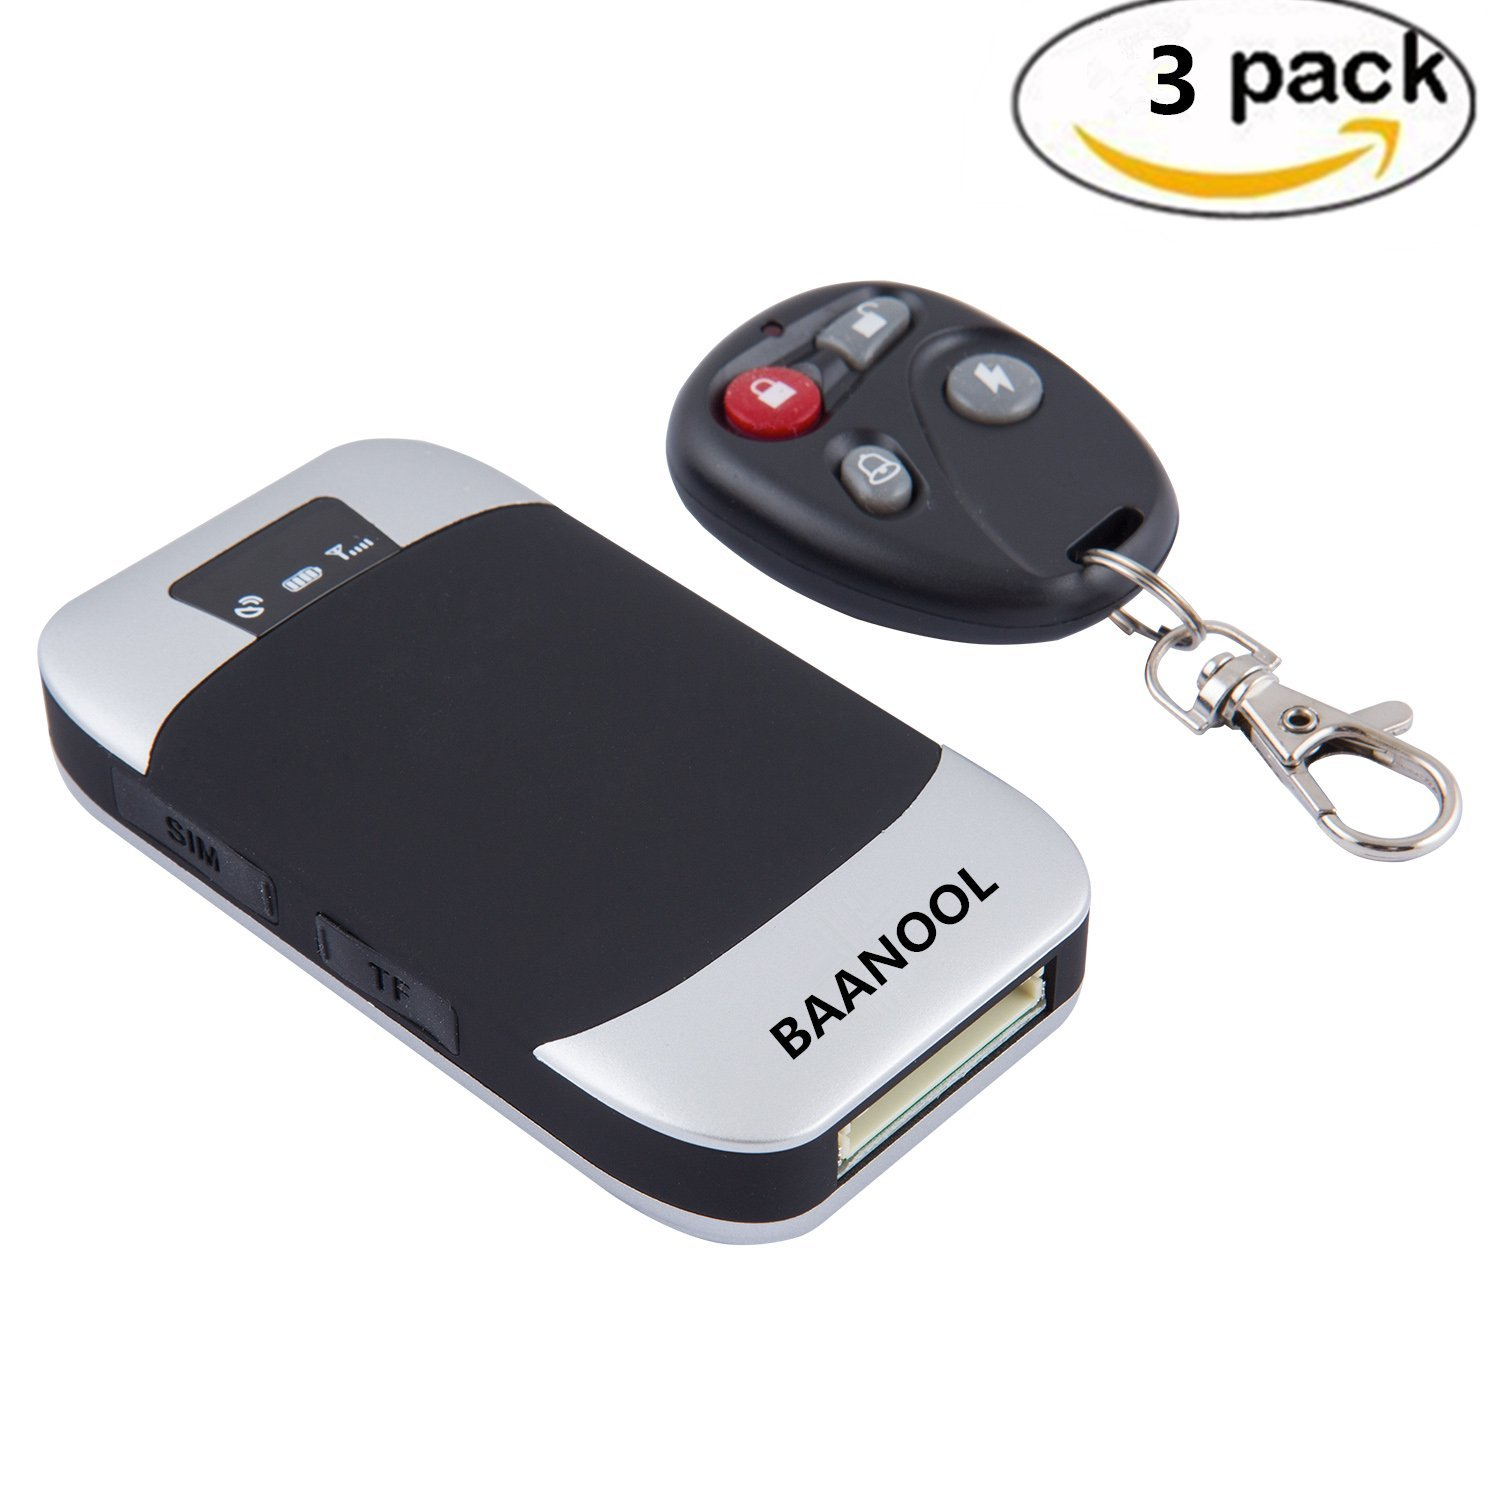 BAANOOL 3PCS Mini Portable GPS tracker Vehicle Car GPS Tracker with Remote Vehicle Tracking Device GPS Real Time Tracker with Vehicle Tracking System 303I